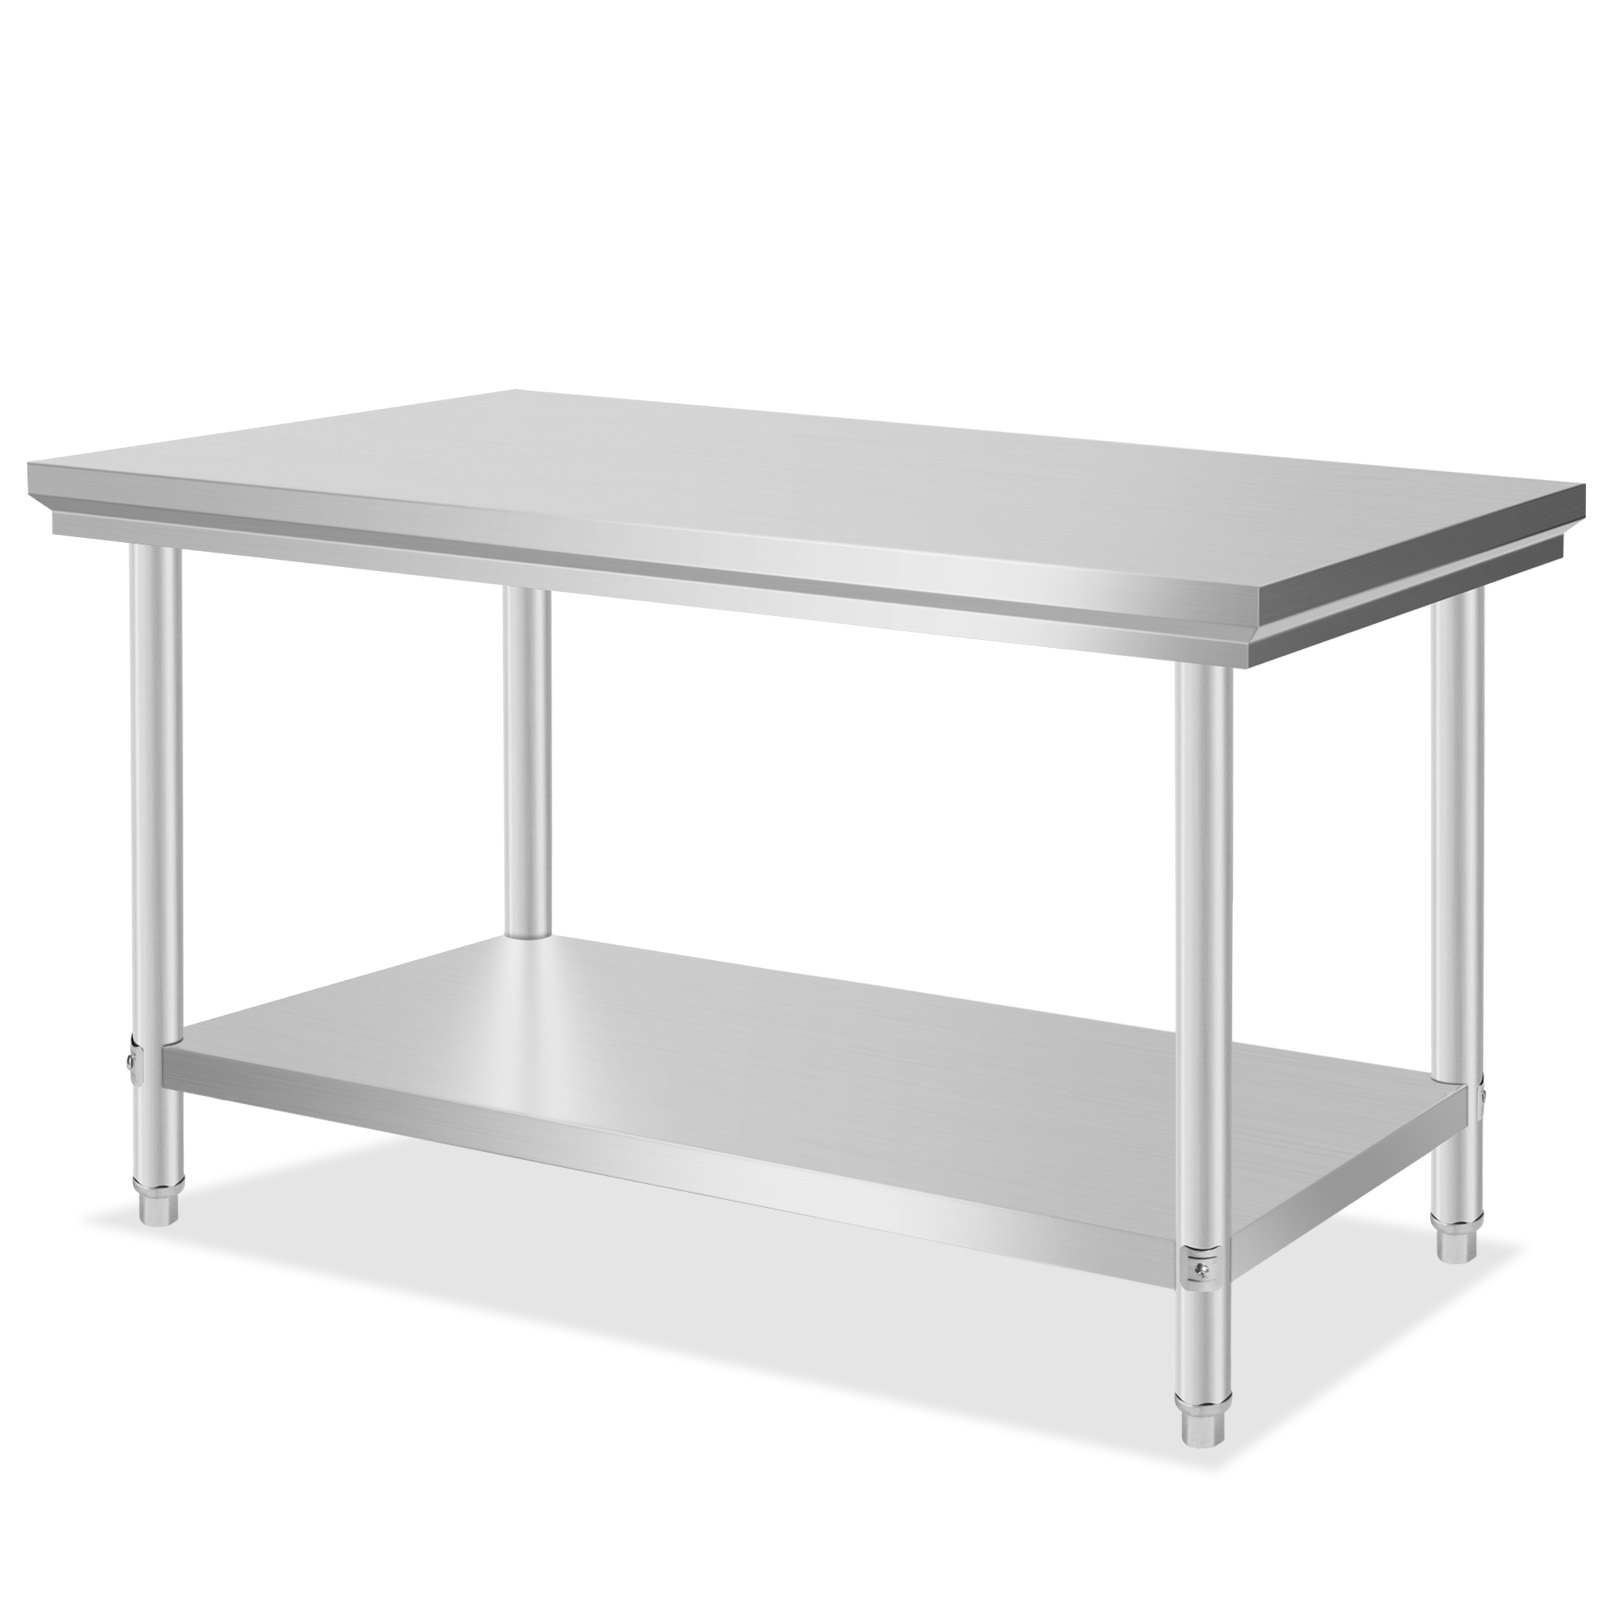 Stainless steel commercial kitchen work prep table 30 x 48 heavy duty nsf new ebay - Industrial kitchen table stainless steel ...